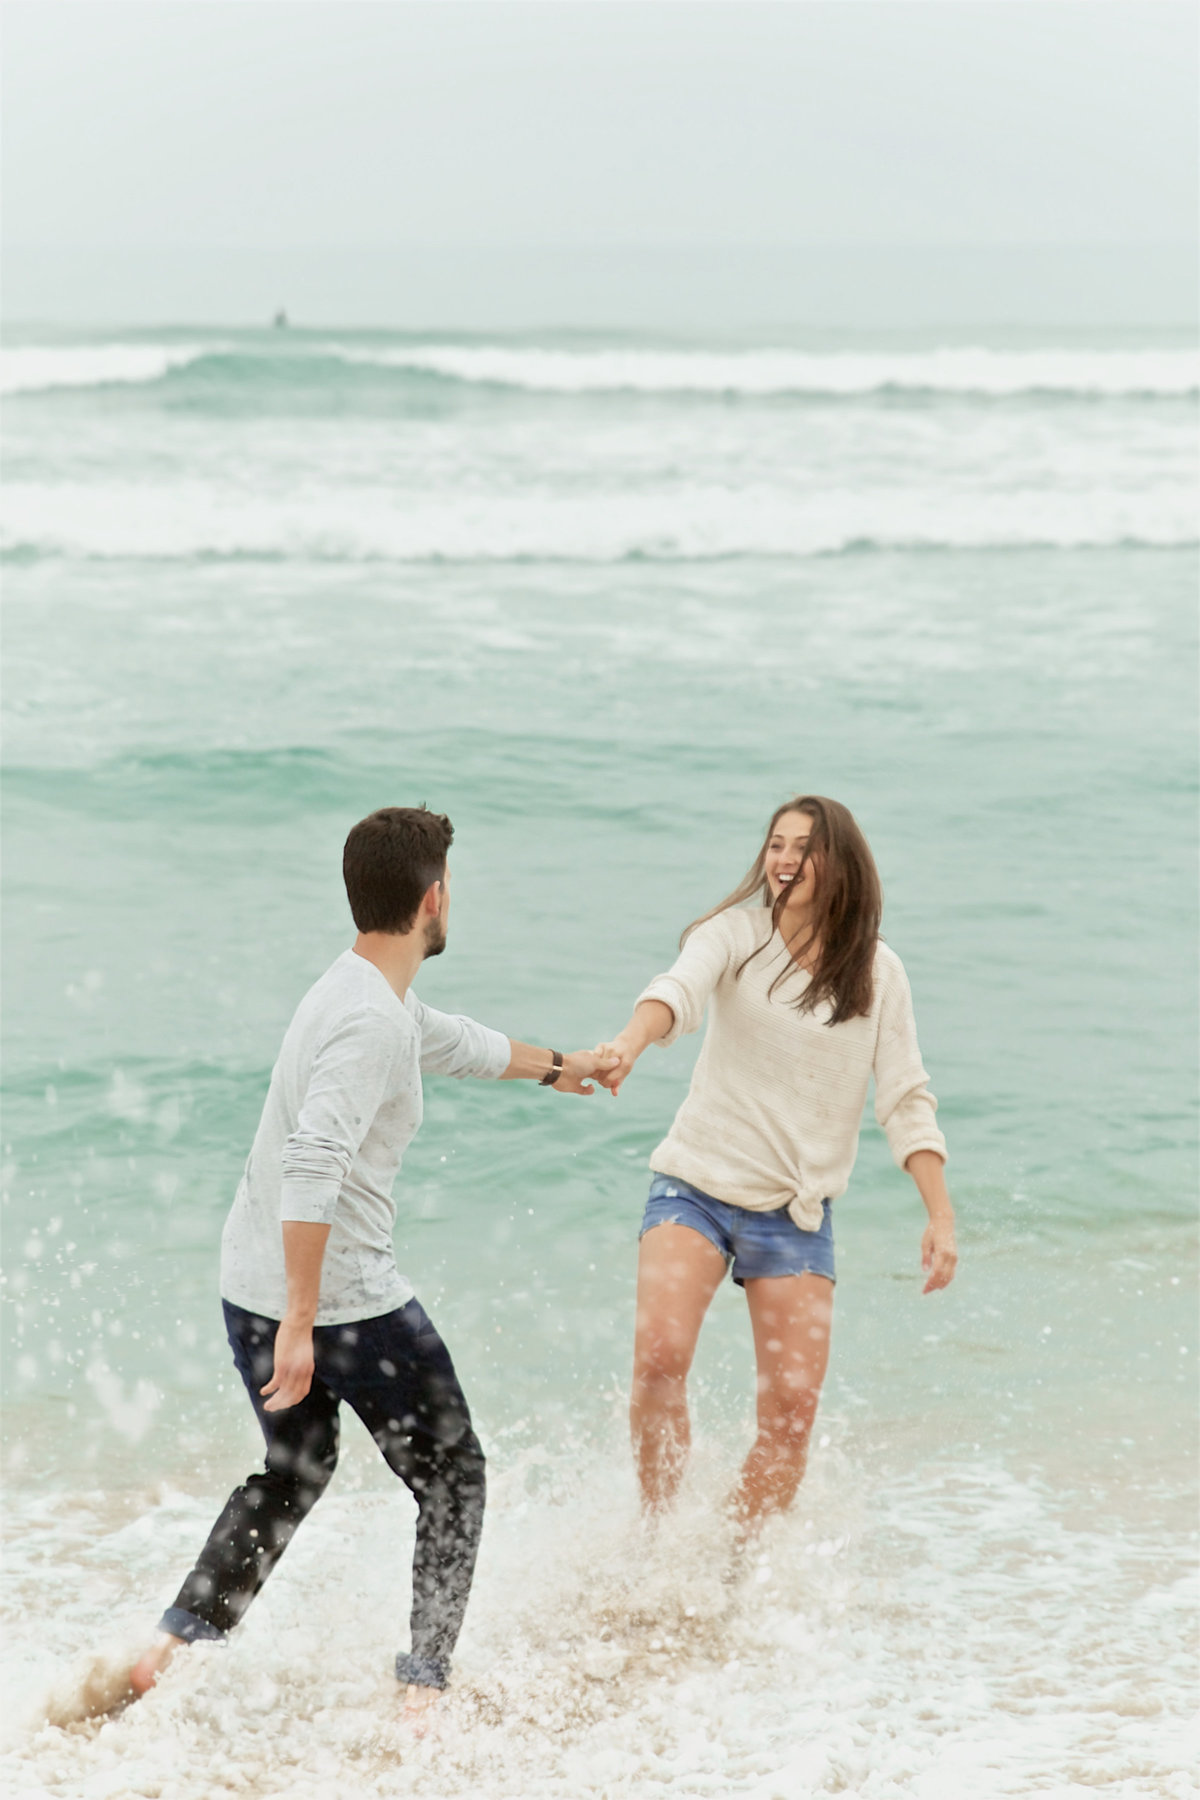 Engagement Wedding Photographer with adventurous boho style Chelsea Loren Photography Hobart Tasmania New South Wales Sydney Huntington Beach California Elopement Beach